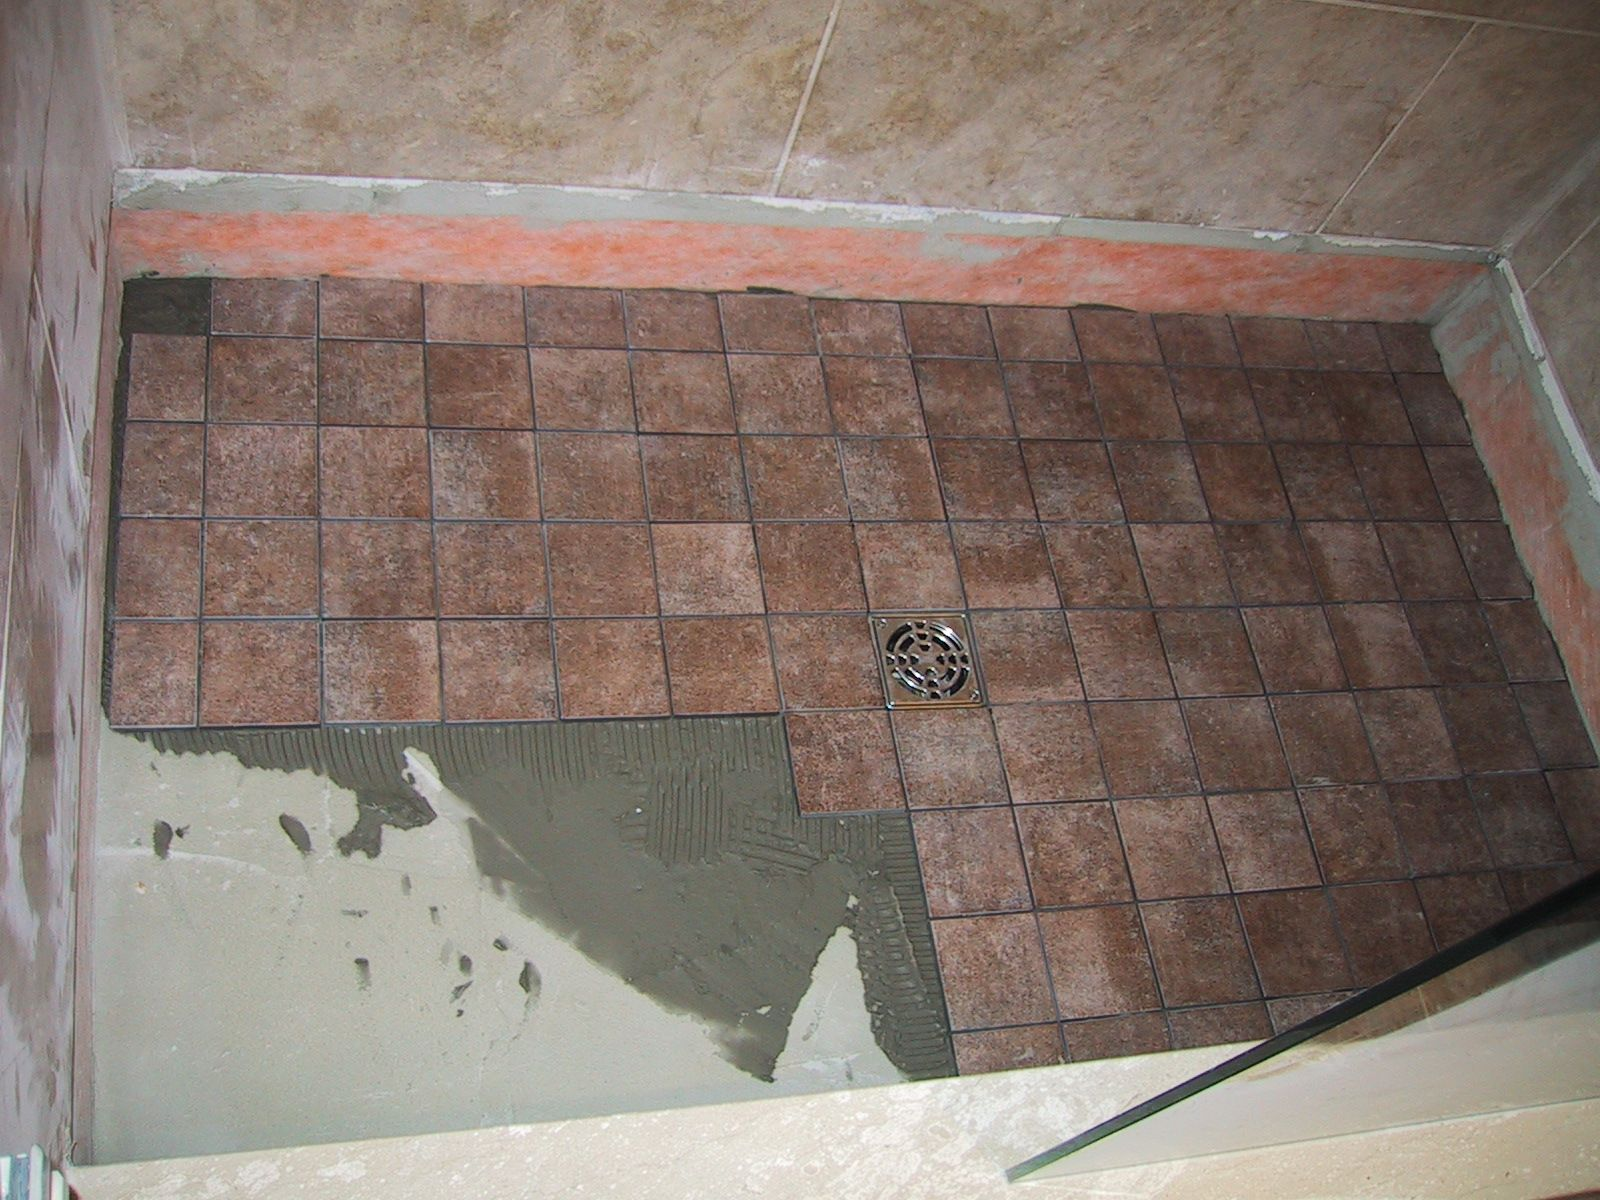 Build The Shower Floor First Including The Floor Tile And Then Tile The Shower Ceiling And Walls Why Well You Want To Have The Shower Floor Tiles Undern